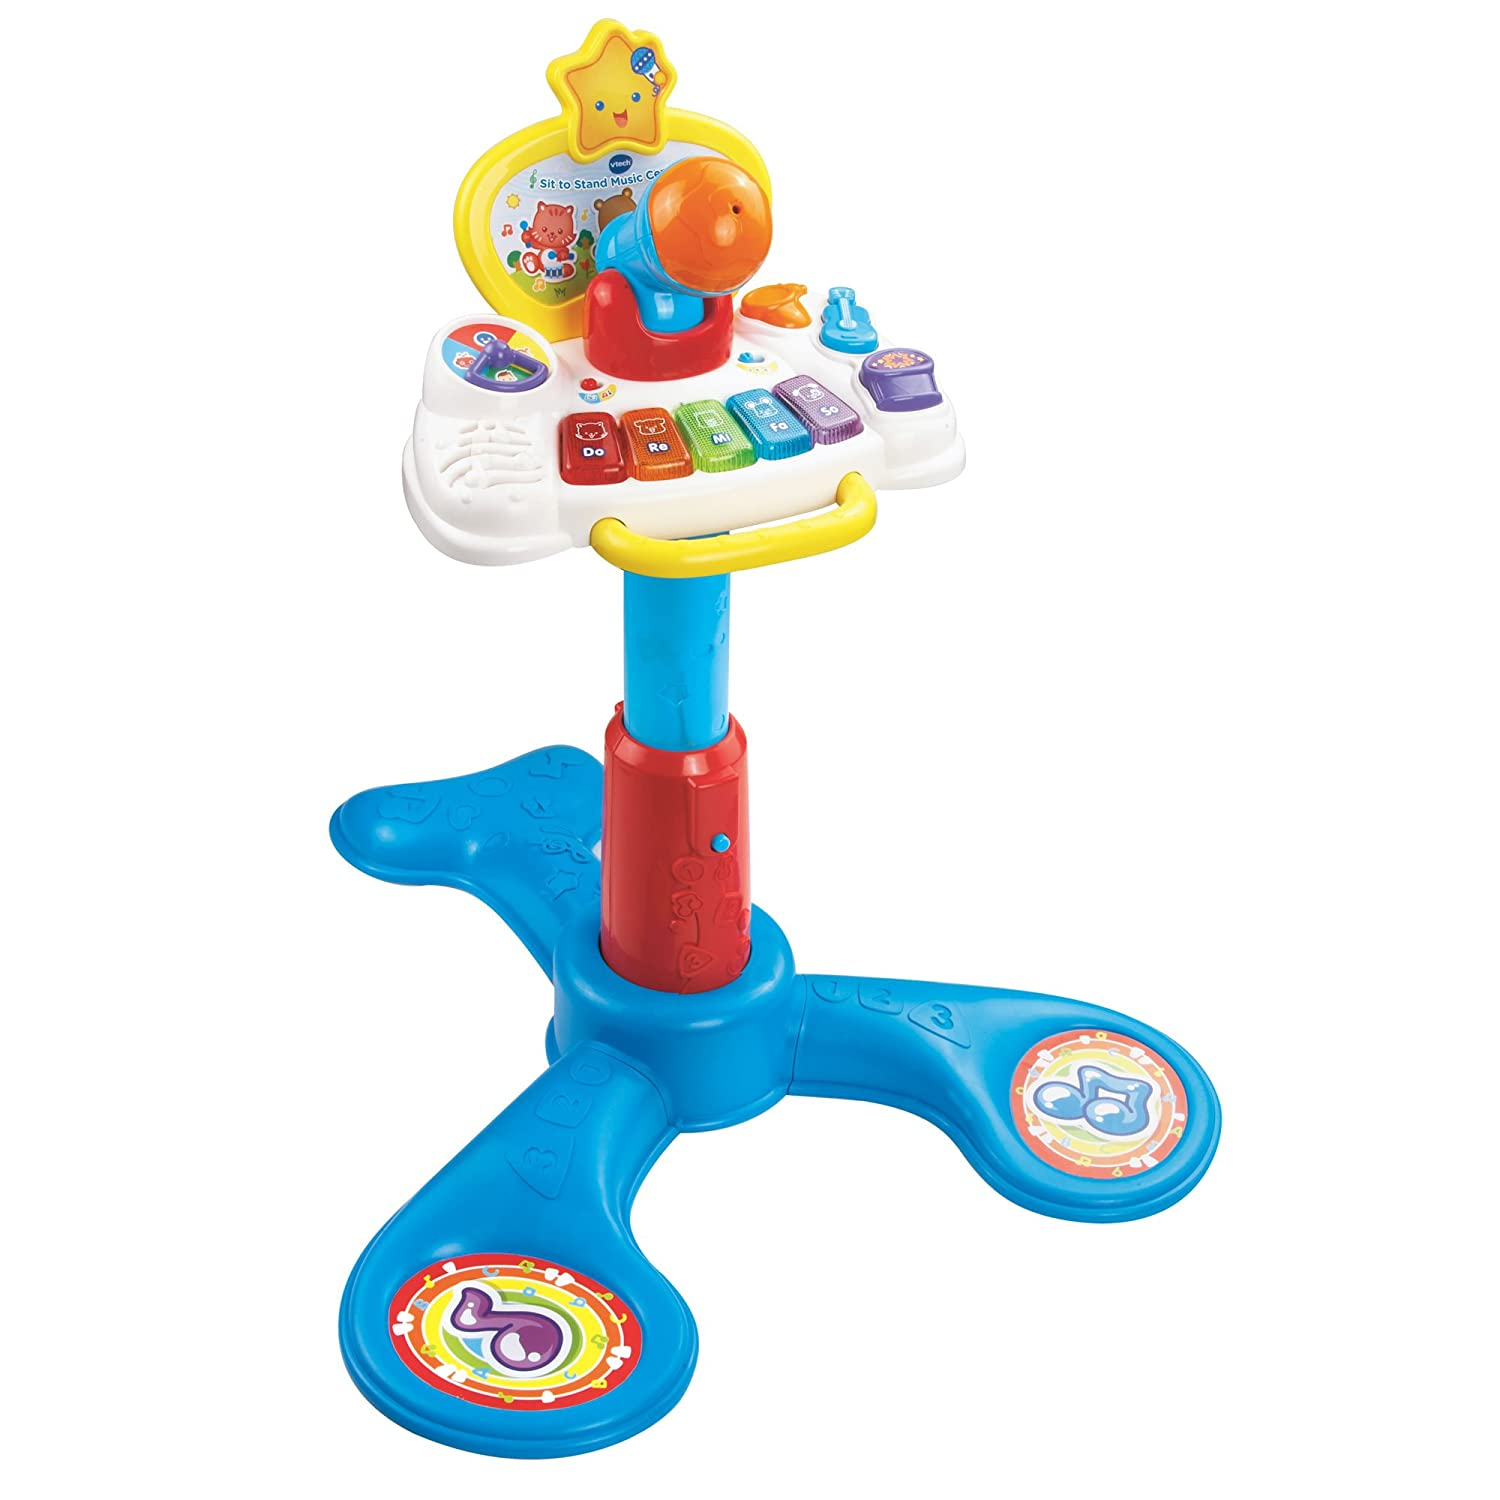 VTech Sit To Stand Music Centre VTech Baby Amazon Toys